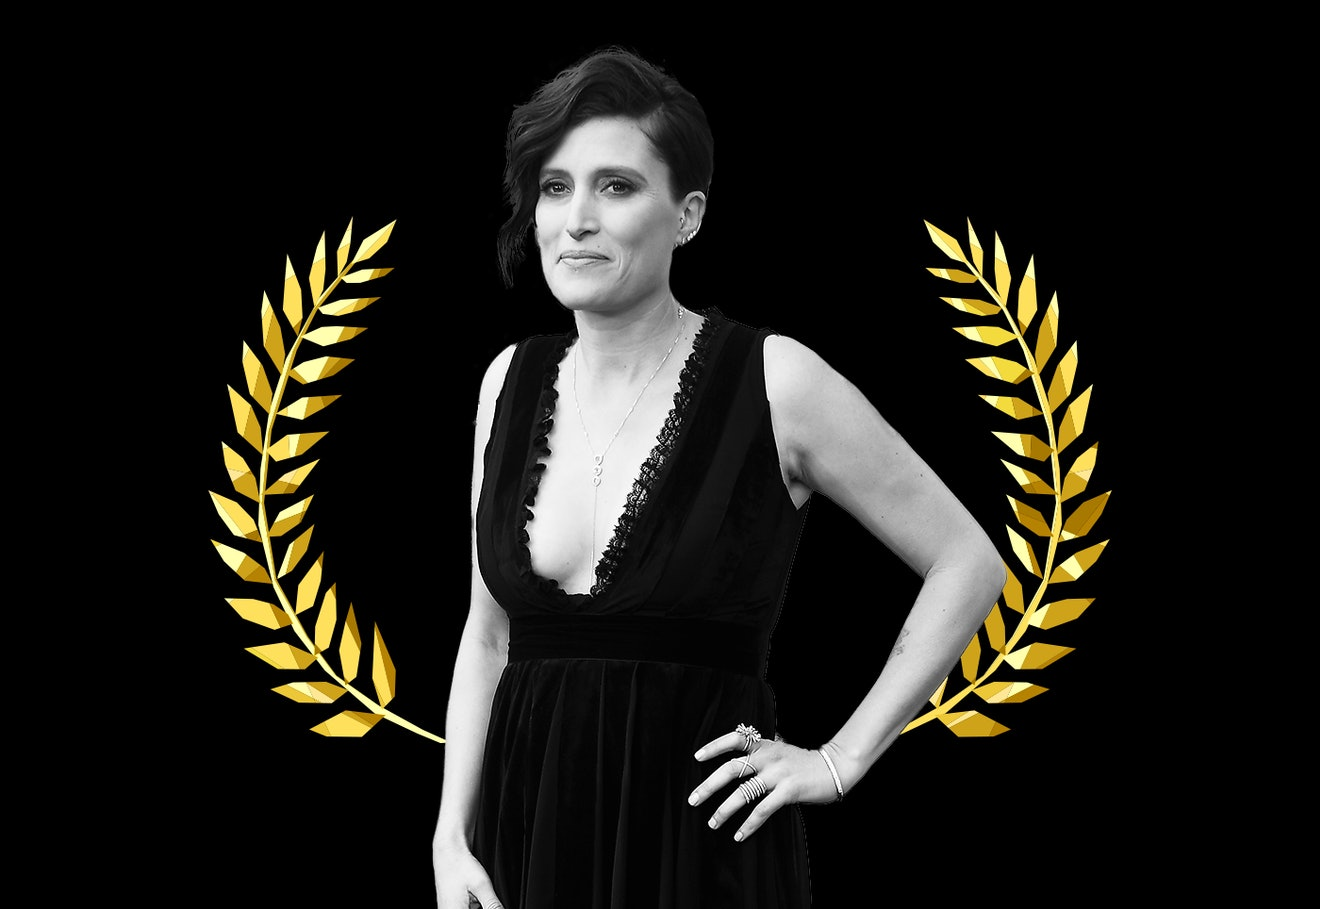 Cinematographer Rachel Morrison was nominated for Best Cinematography for 'Mudbound' at the 2018 Oscars,